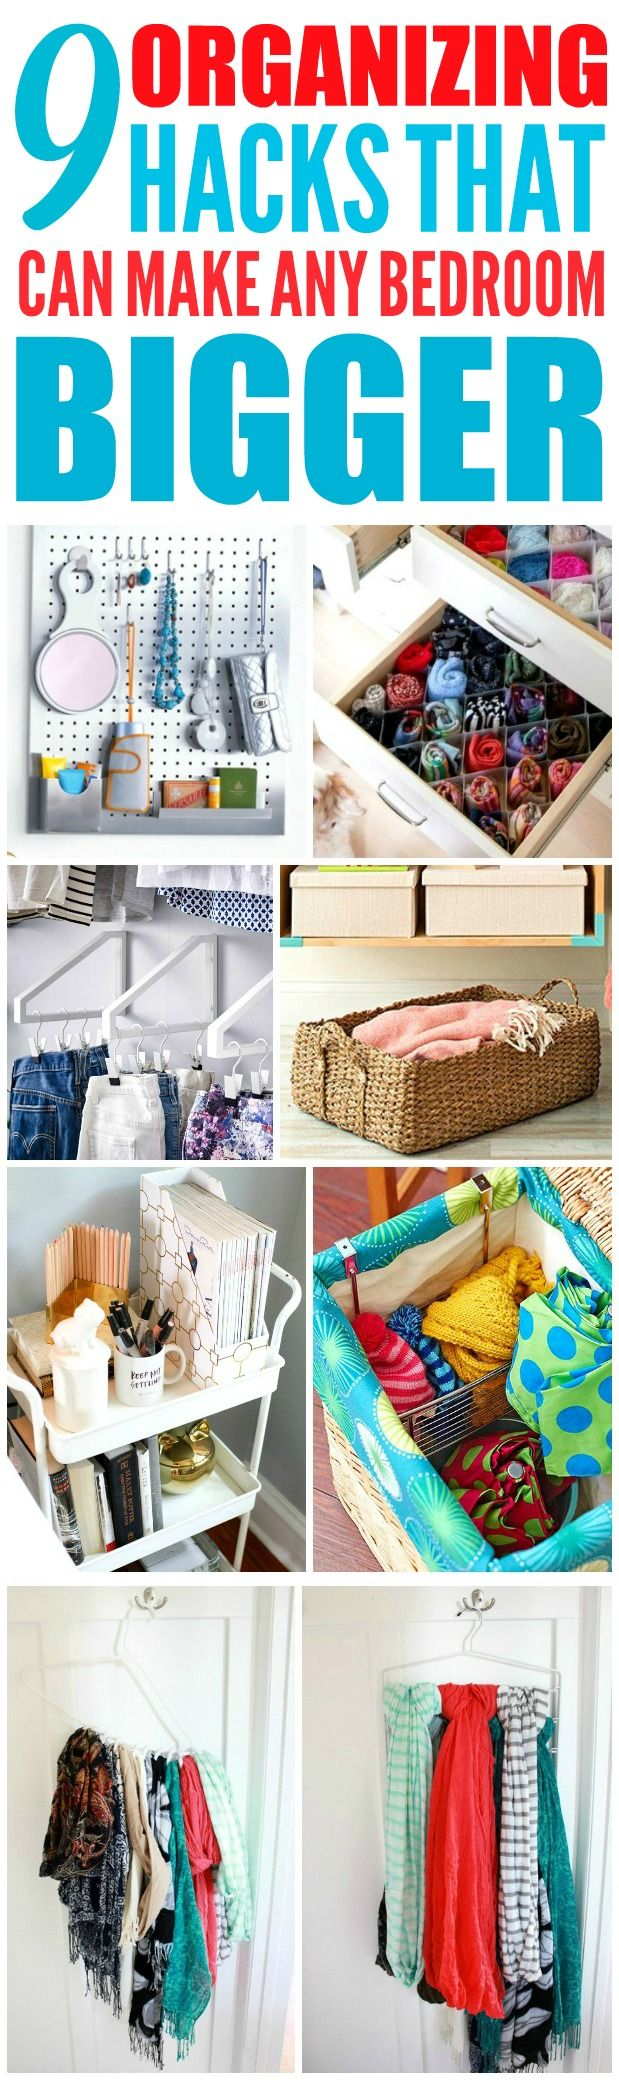 Organization For Bedrooms 17 Best Ideas About Small Bedroom Organization On Pinterest